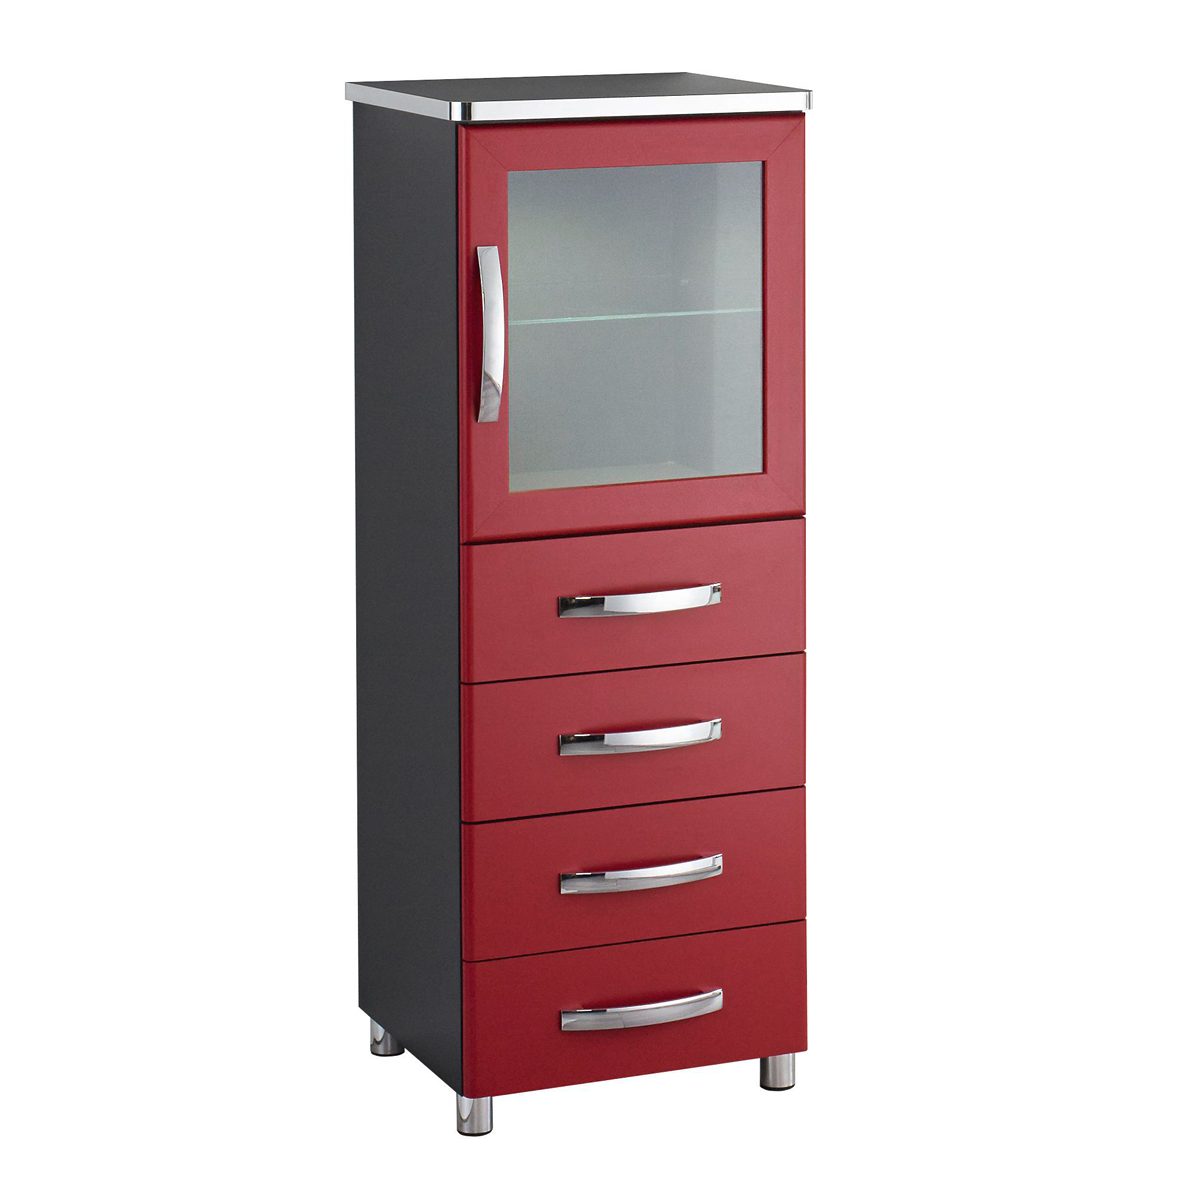 vitrine cubana kommode schrank hochkommode in schwarz rot. Black Bedroom Furniture Sets. Home Design Ideas